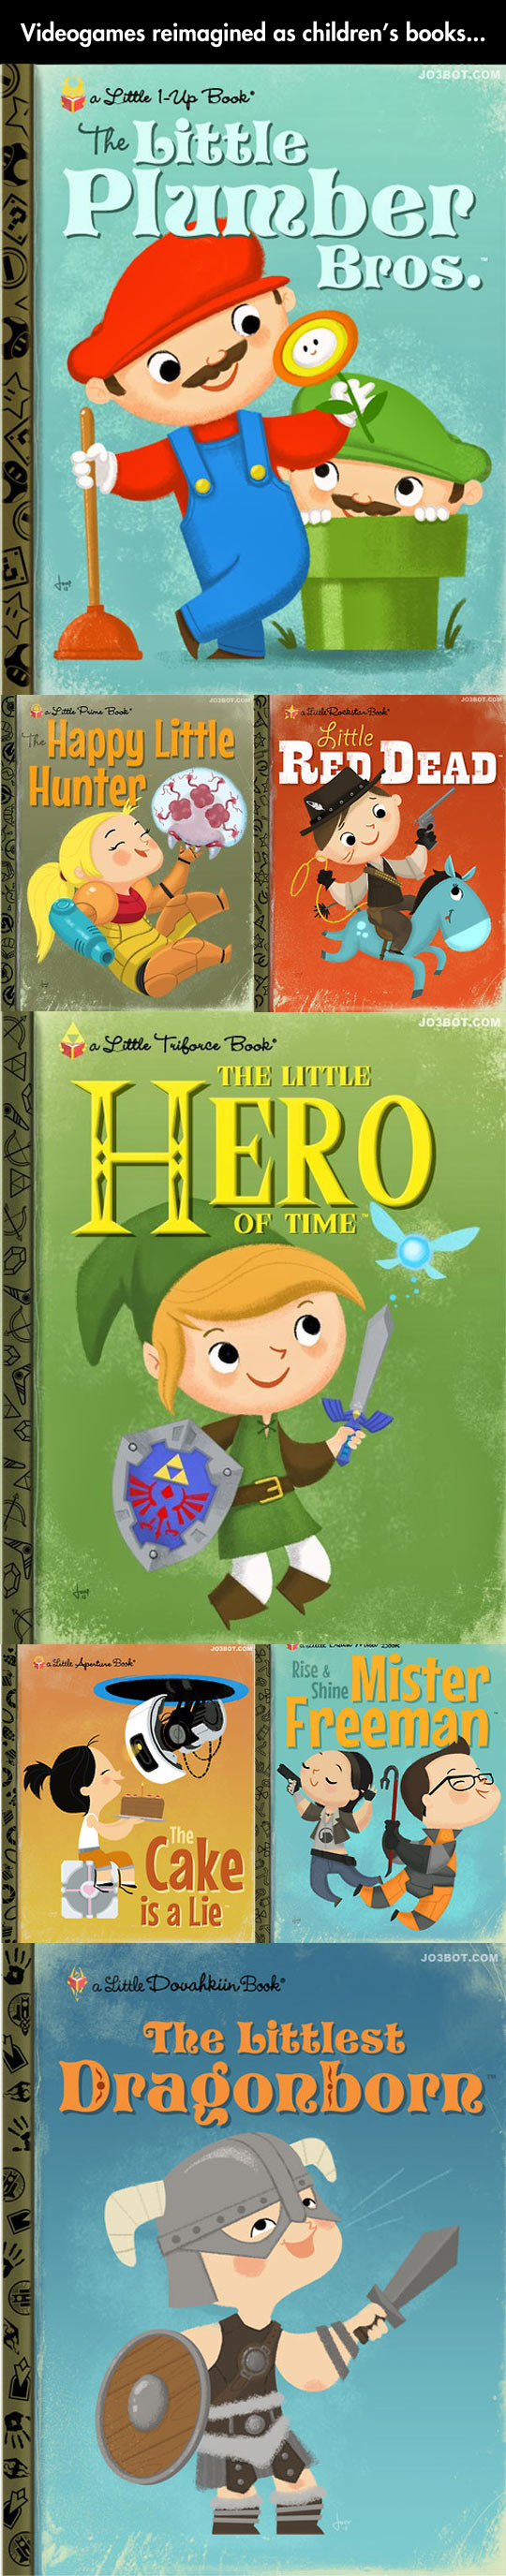 Classic Children S Book Cover ~ Video games reimagined as classic childrens books by joey spiotto